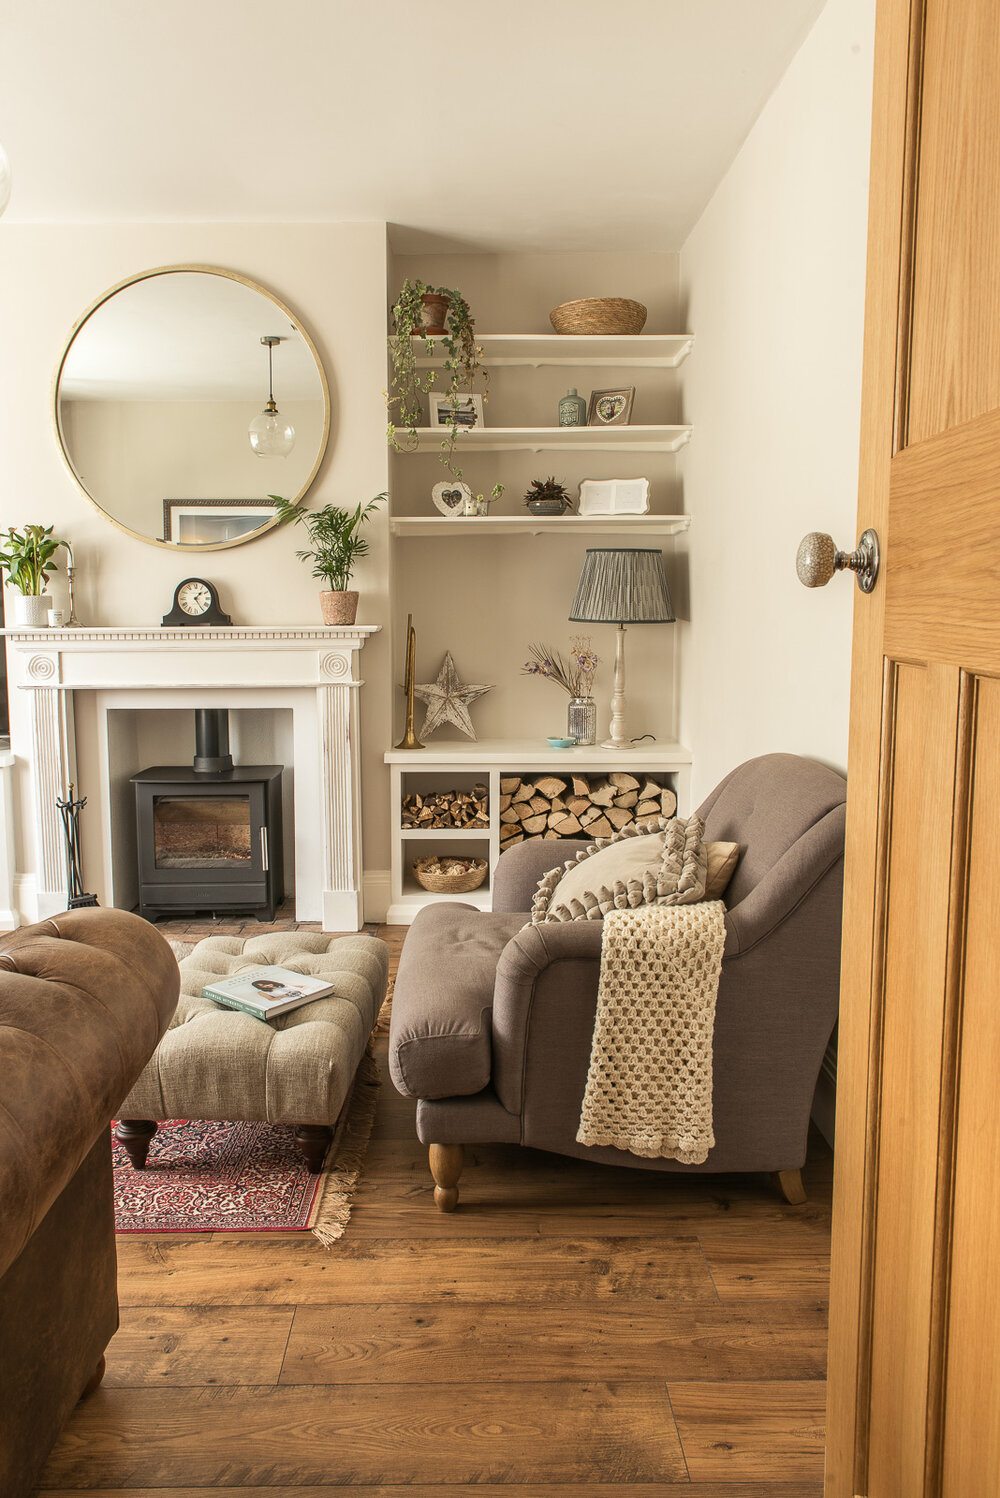 8 cosy living room ideas to try in your home | Fifi McGee | Interiors + Renovation Blog